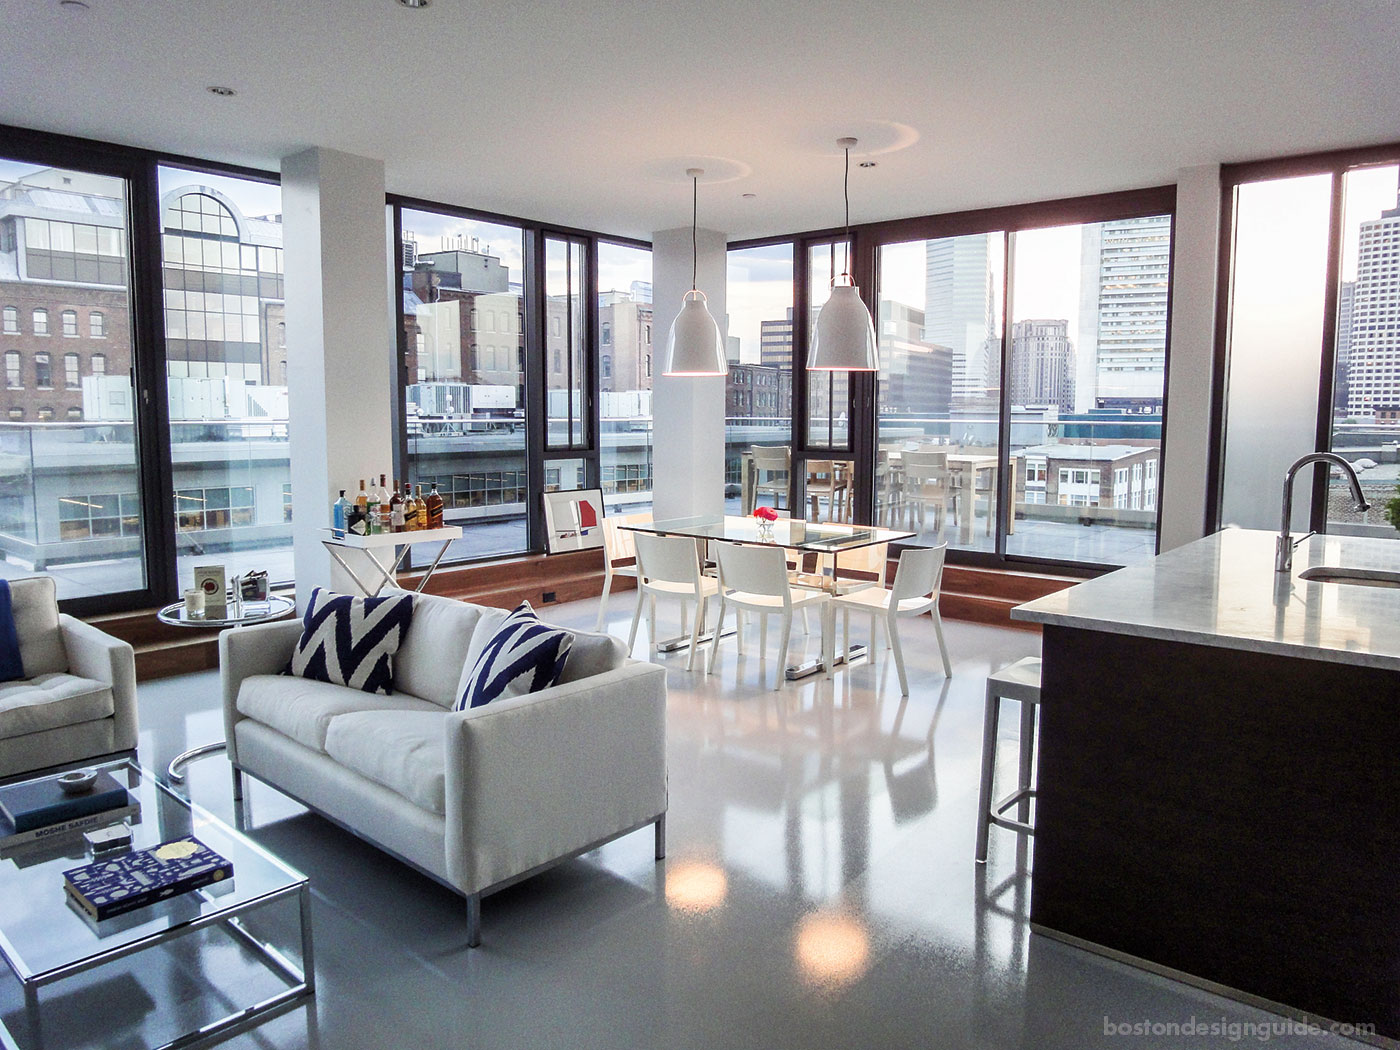 I-Kanda Architects loft-style home in the Seaport District, Boston